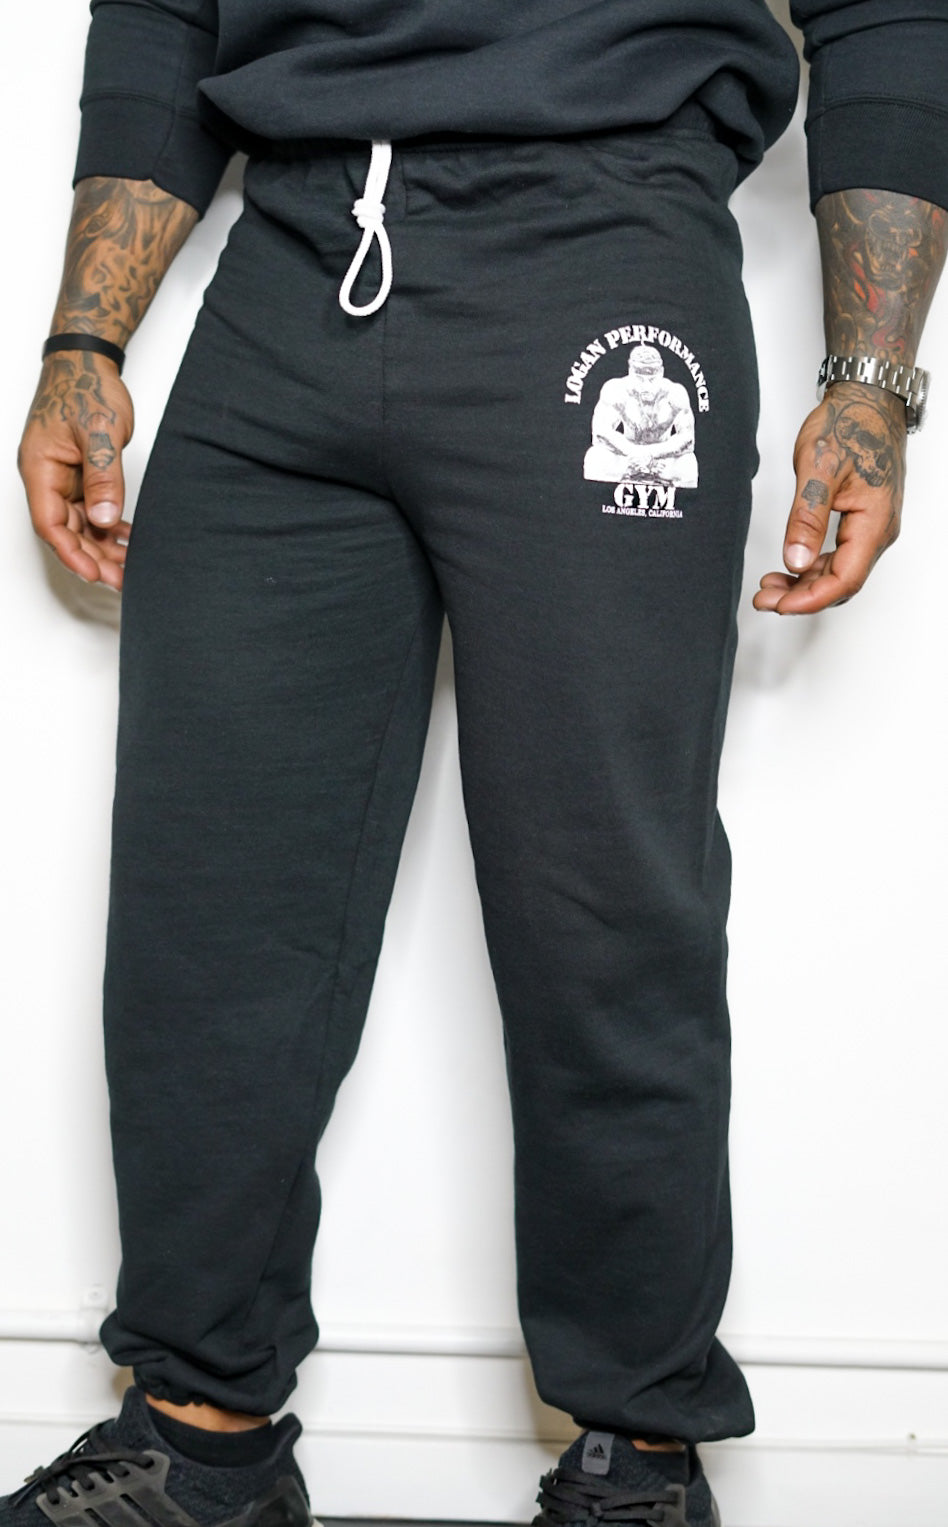 Old school Sweatpants